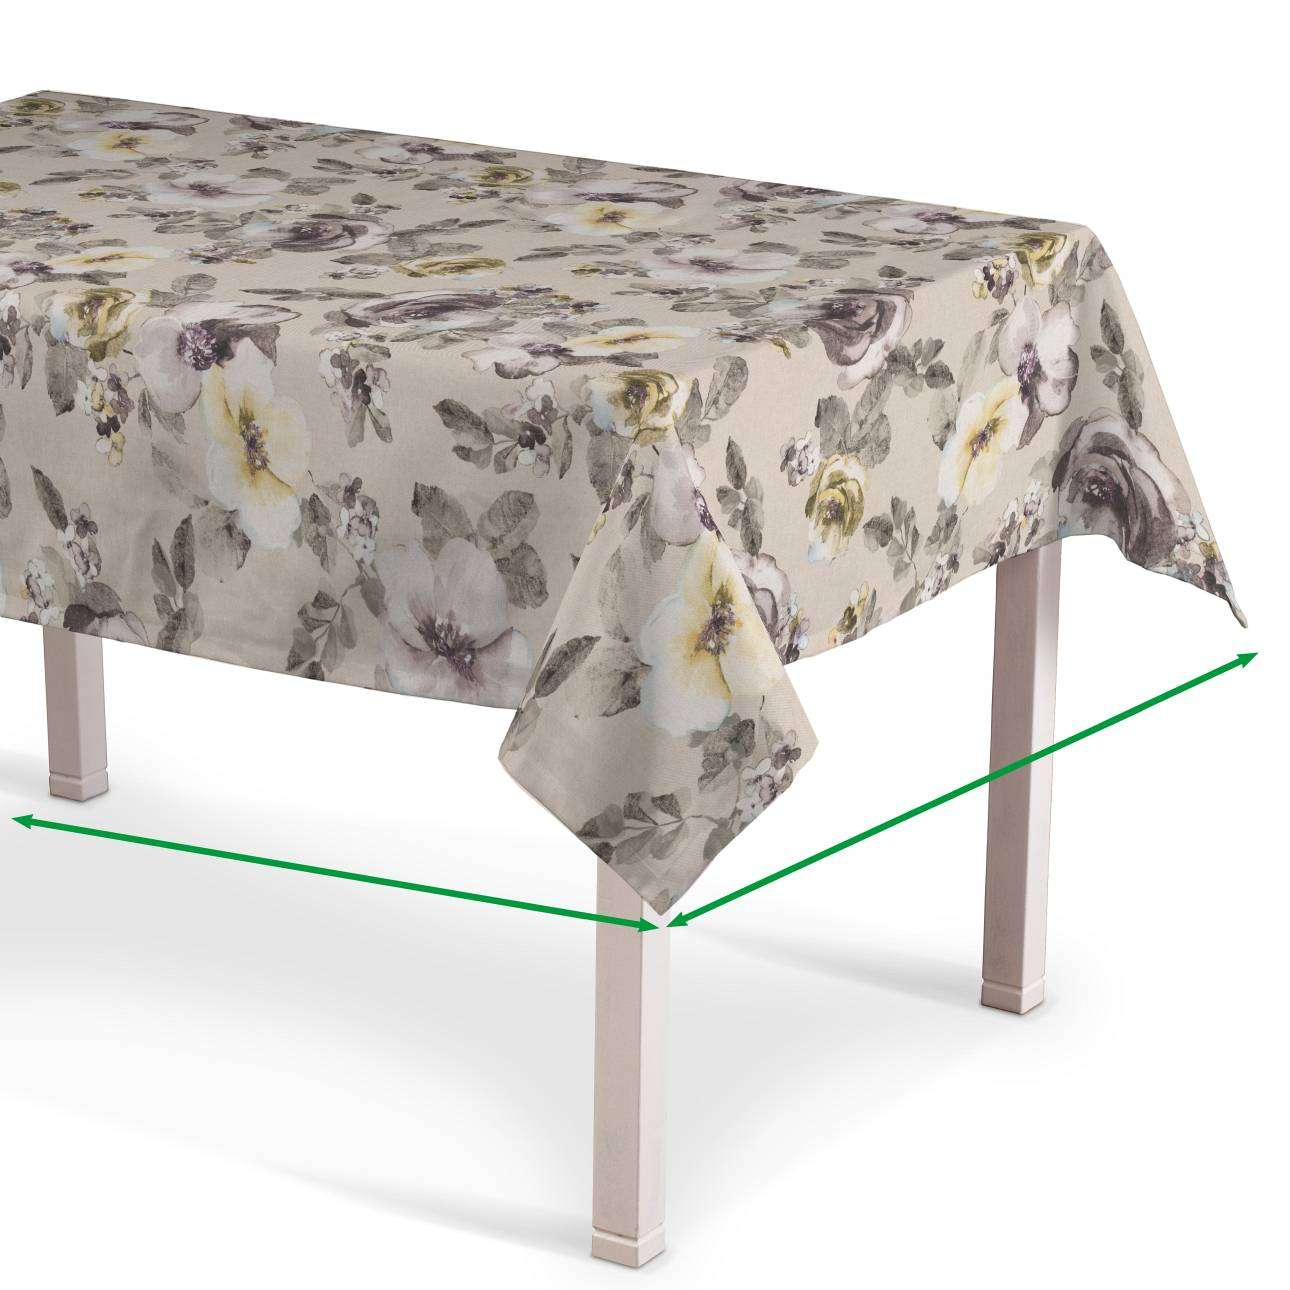 Rectangular tablecloth in collection Londres, fabric: 140-44